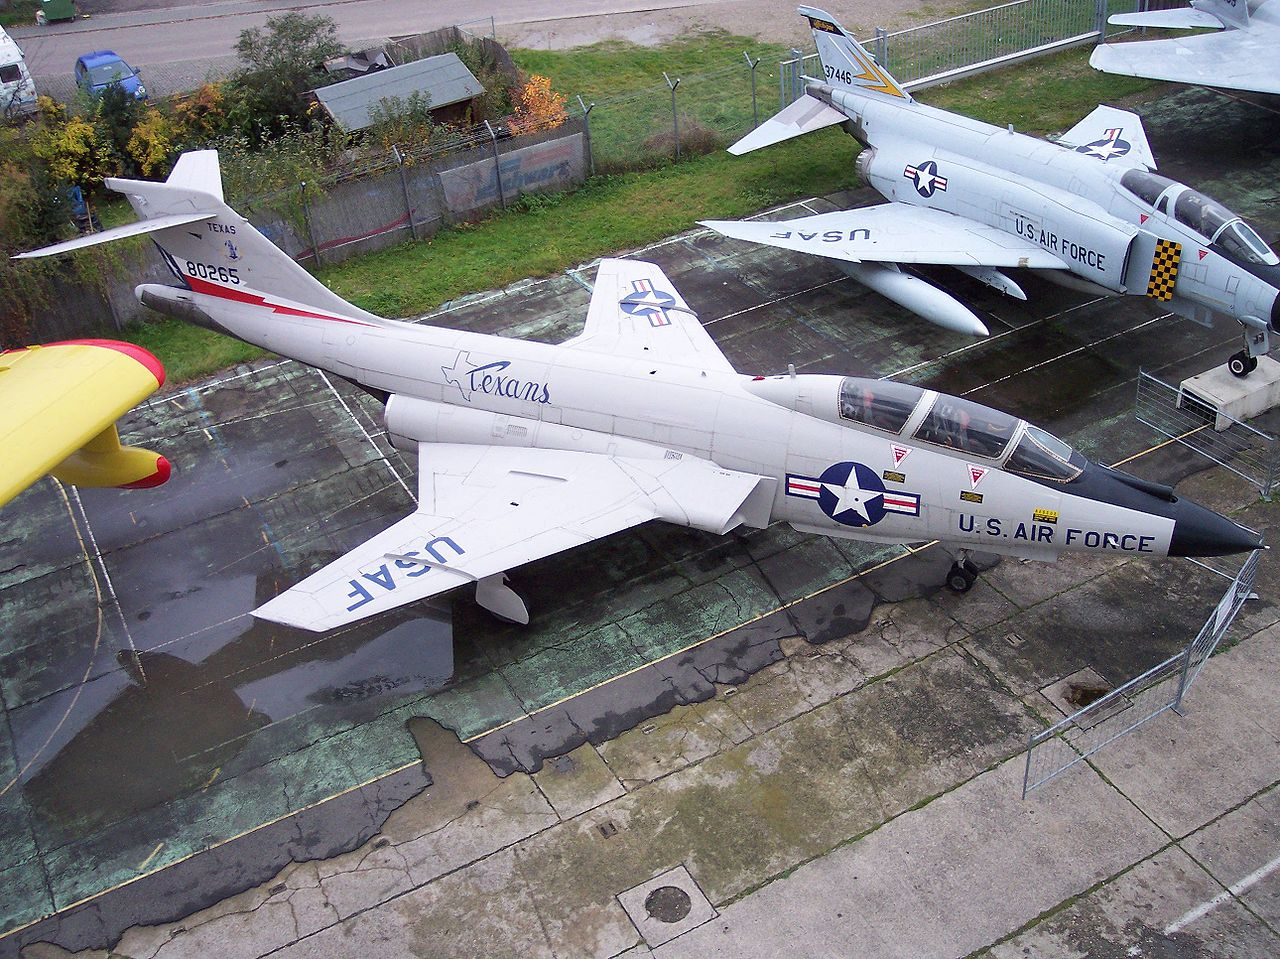 1280px-McDonnell_F-101_Voodoo_high.jpg